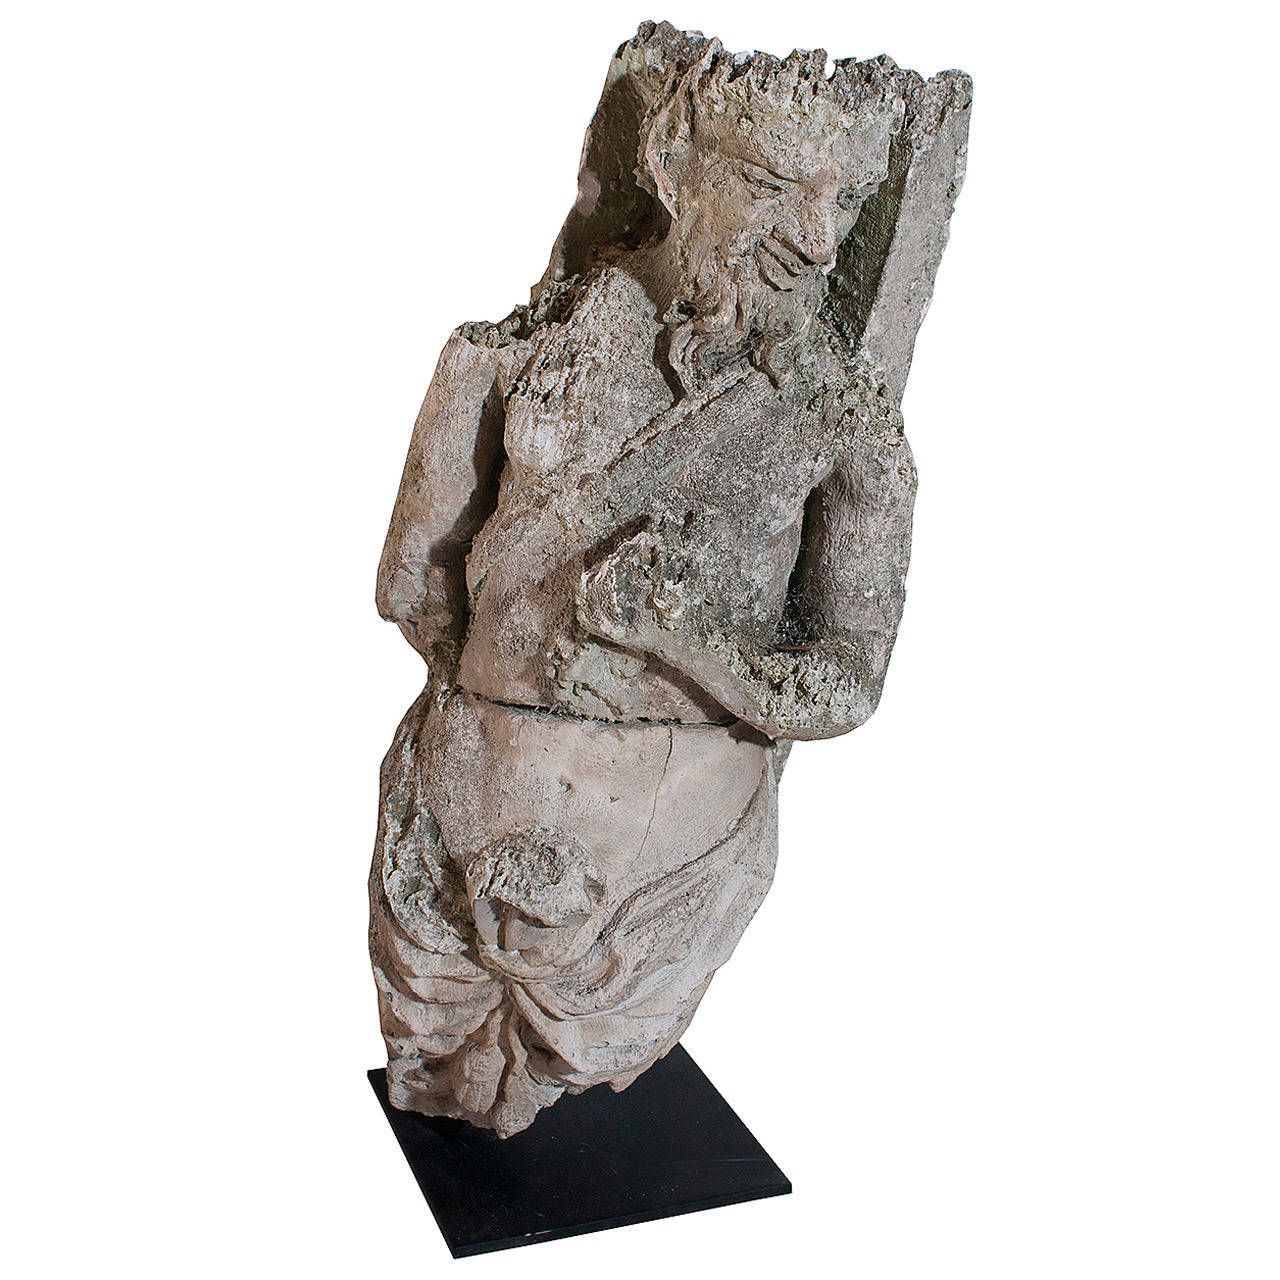 Limestone Sculpture of a Faun | From a unique collection of antique and modern statues at https://www.1stdibs.com/furniture/building-garden/statues/